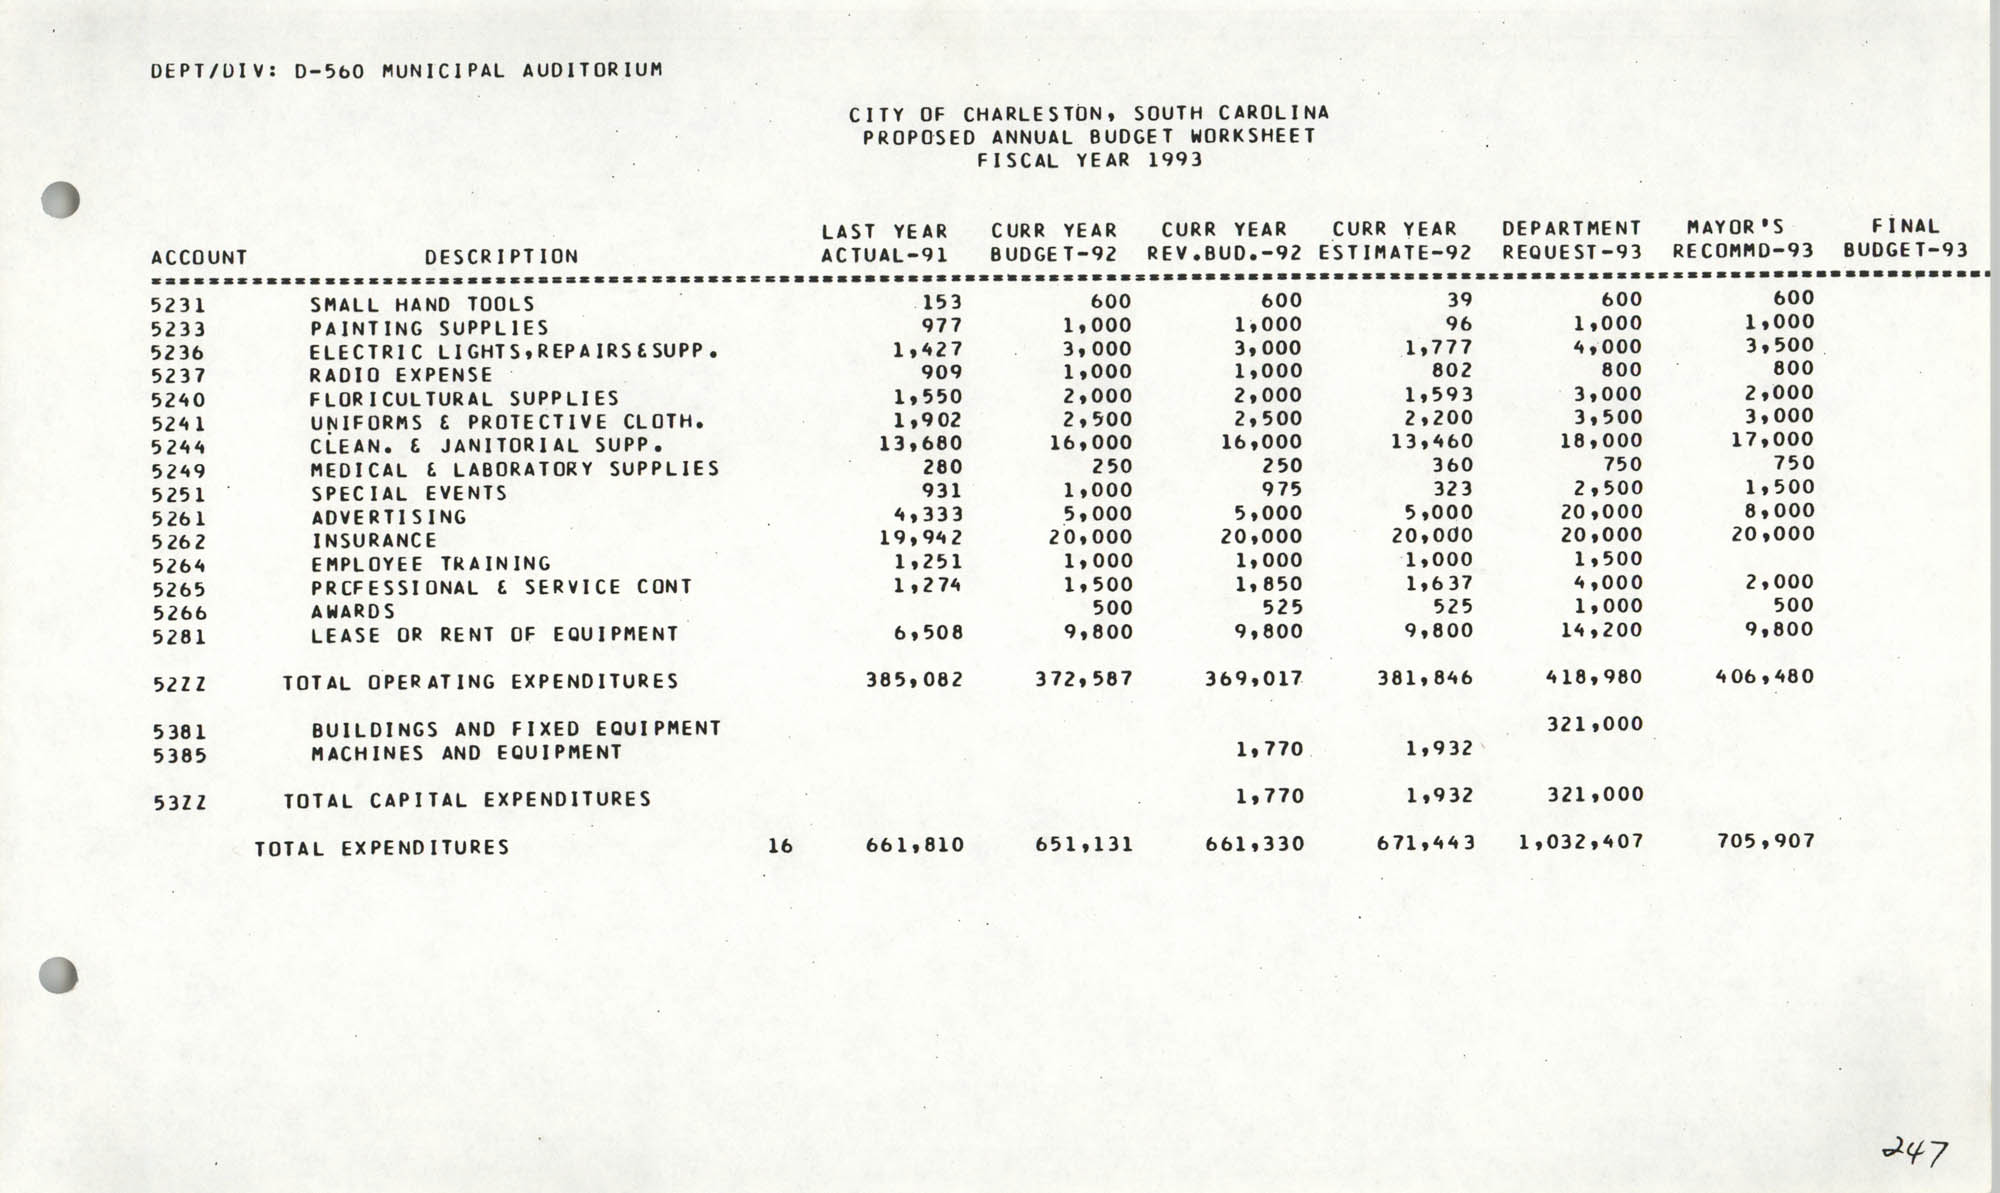 The City Council of Charleston, South Carolina, 1993 Budget, Page 247